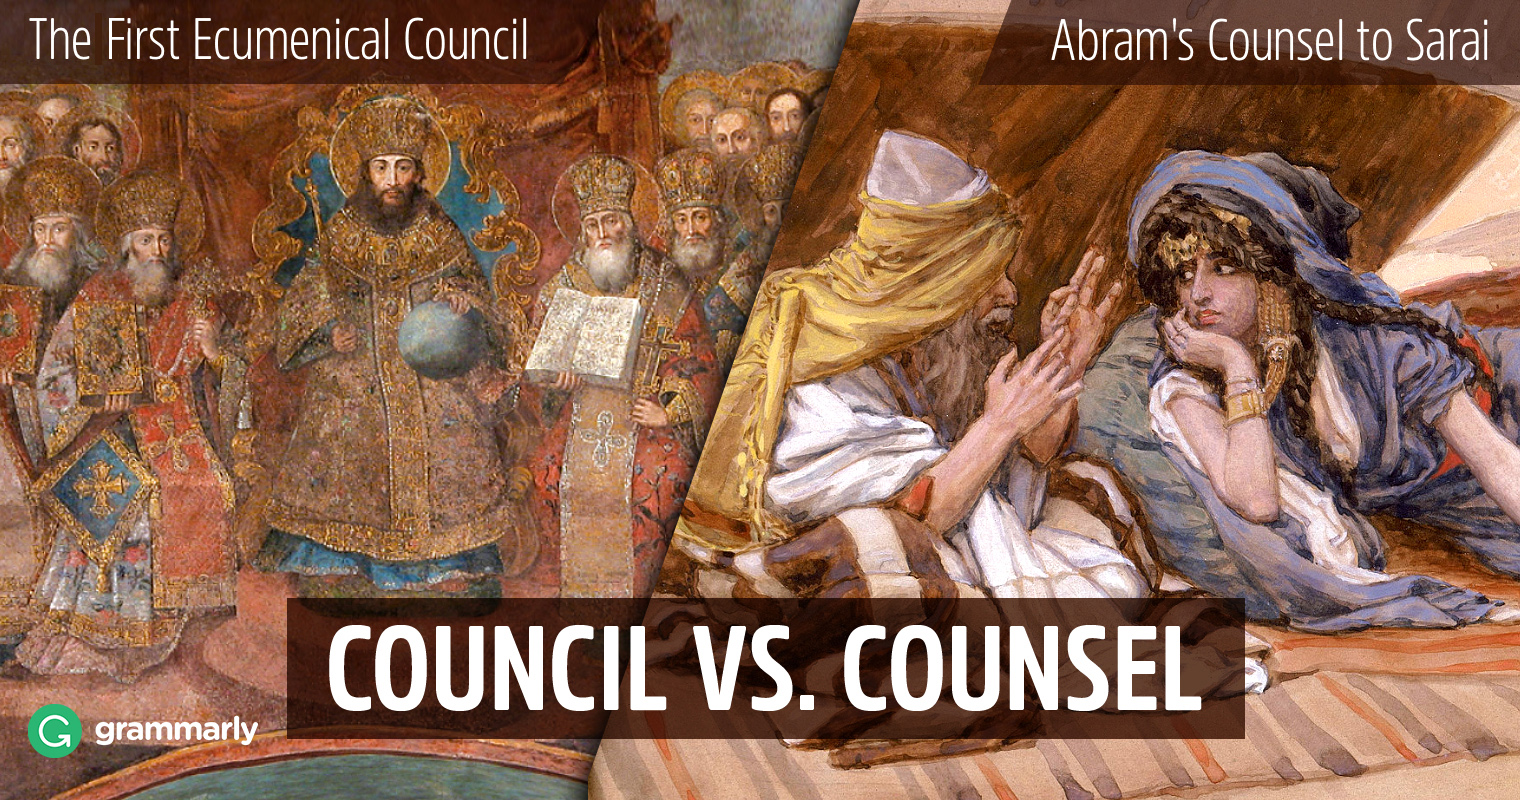 Council vs. Counsel—What's the Difference?